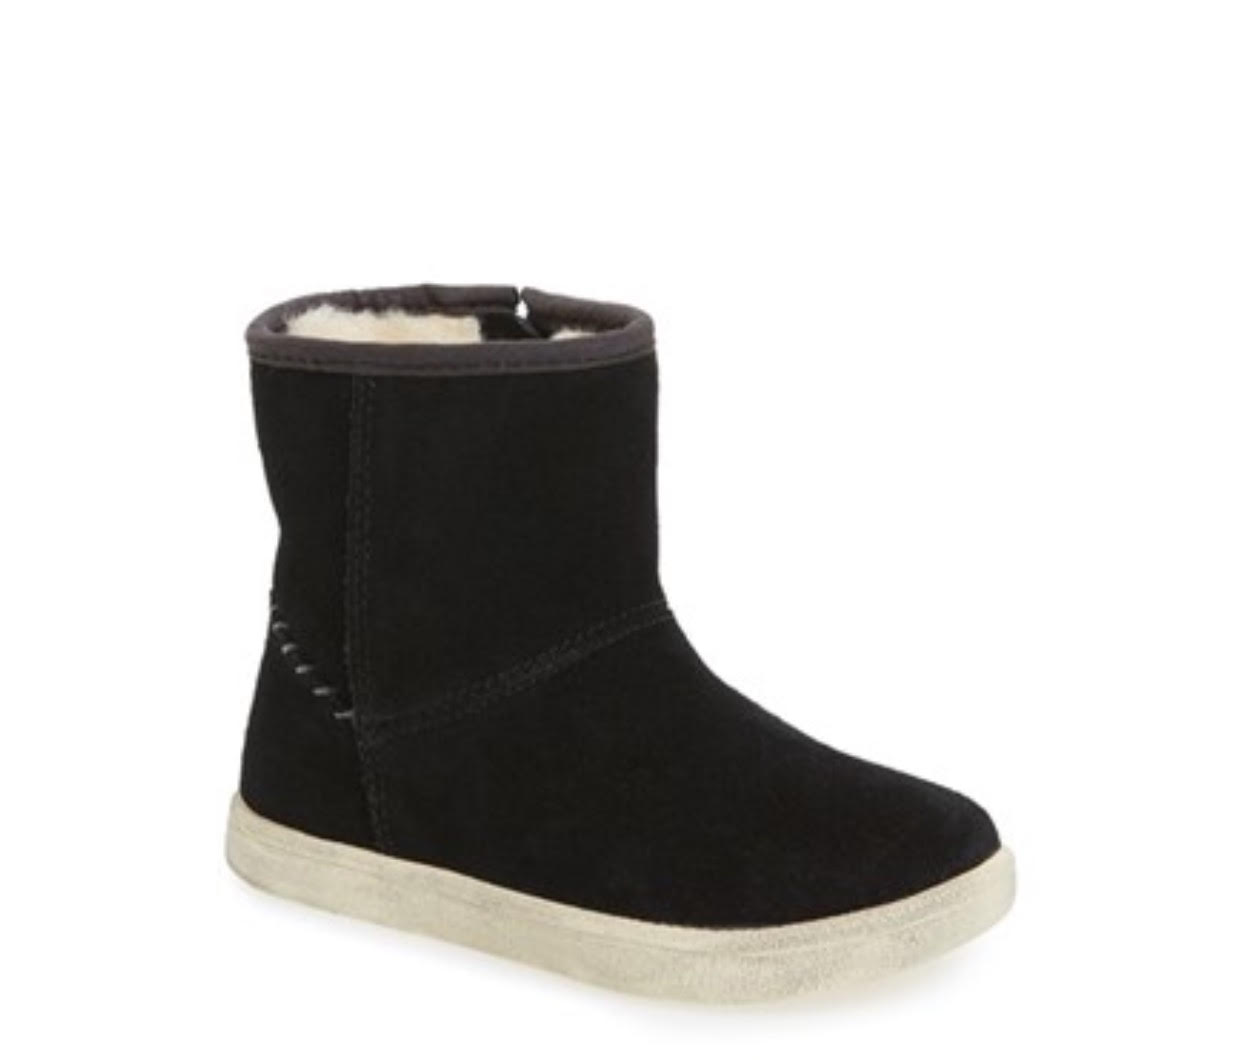 8c8d1caf647 UGG® 'Rye' Boot Toddler and walker - Metziahs